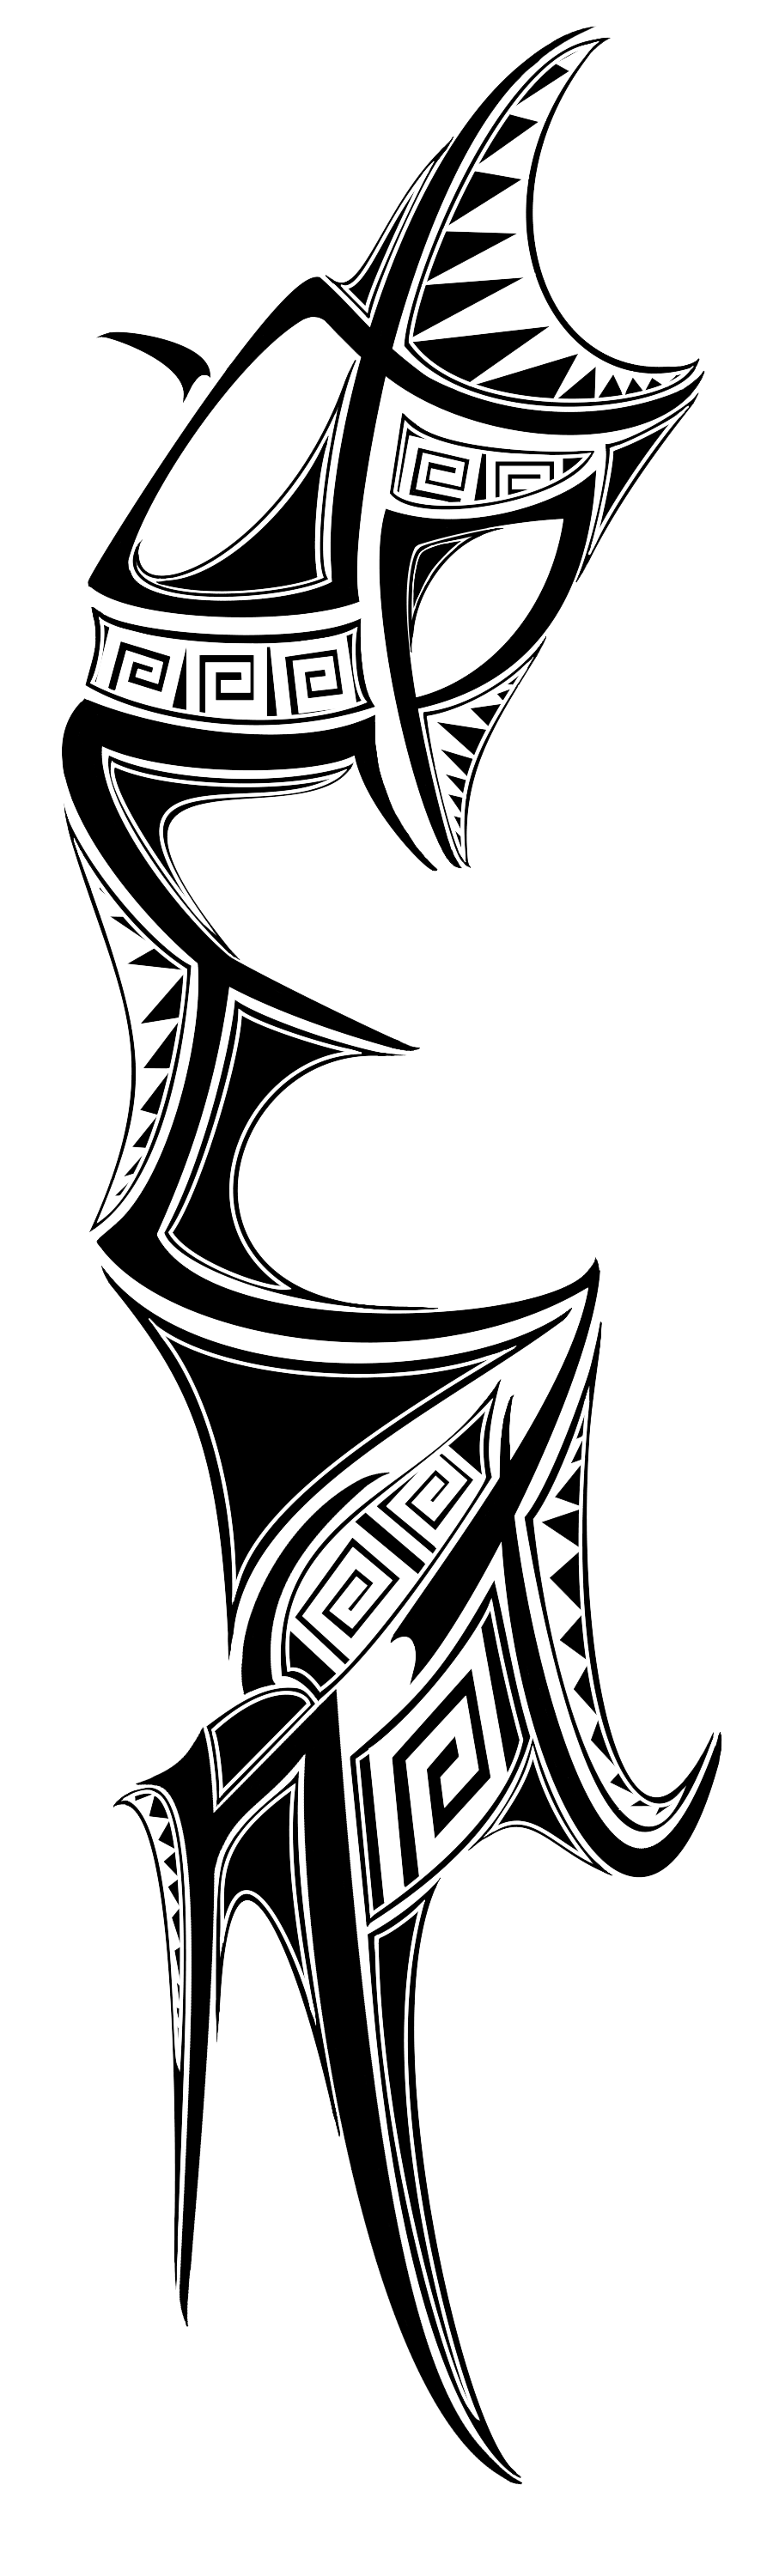 Sleeve tattoo png. Download arm transparent danesharacmc